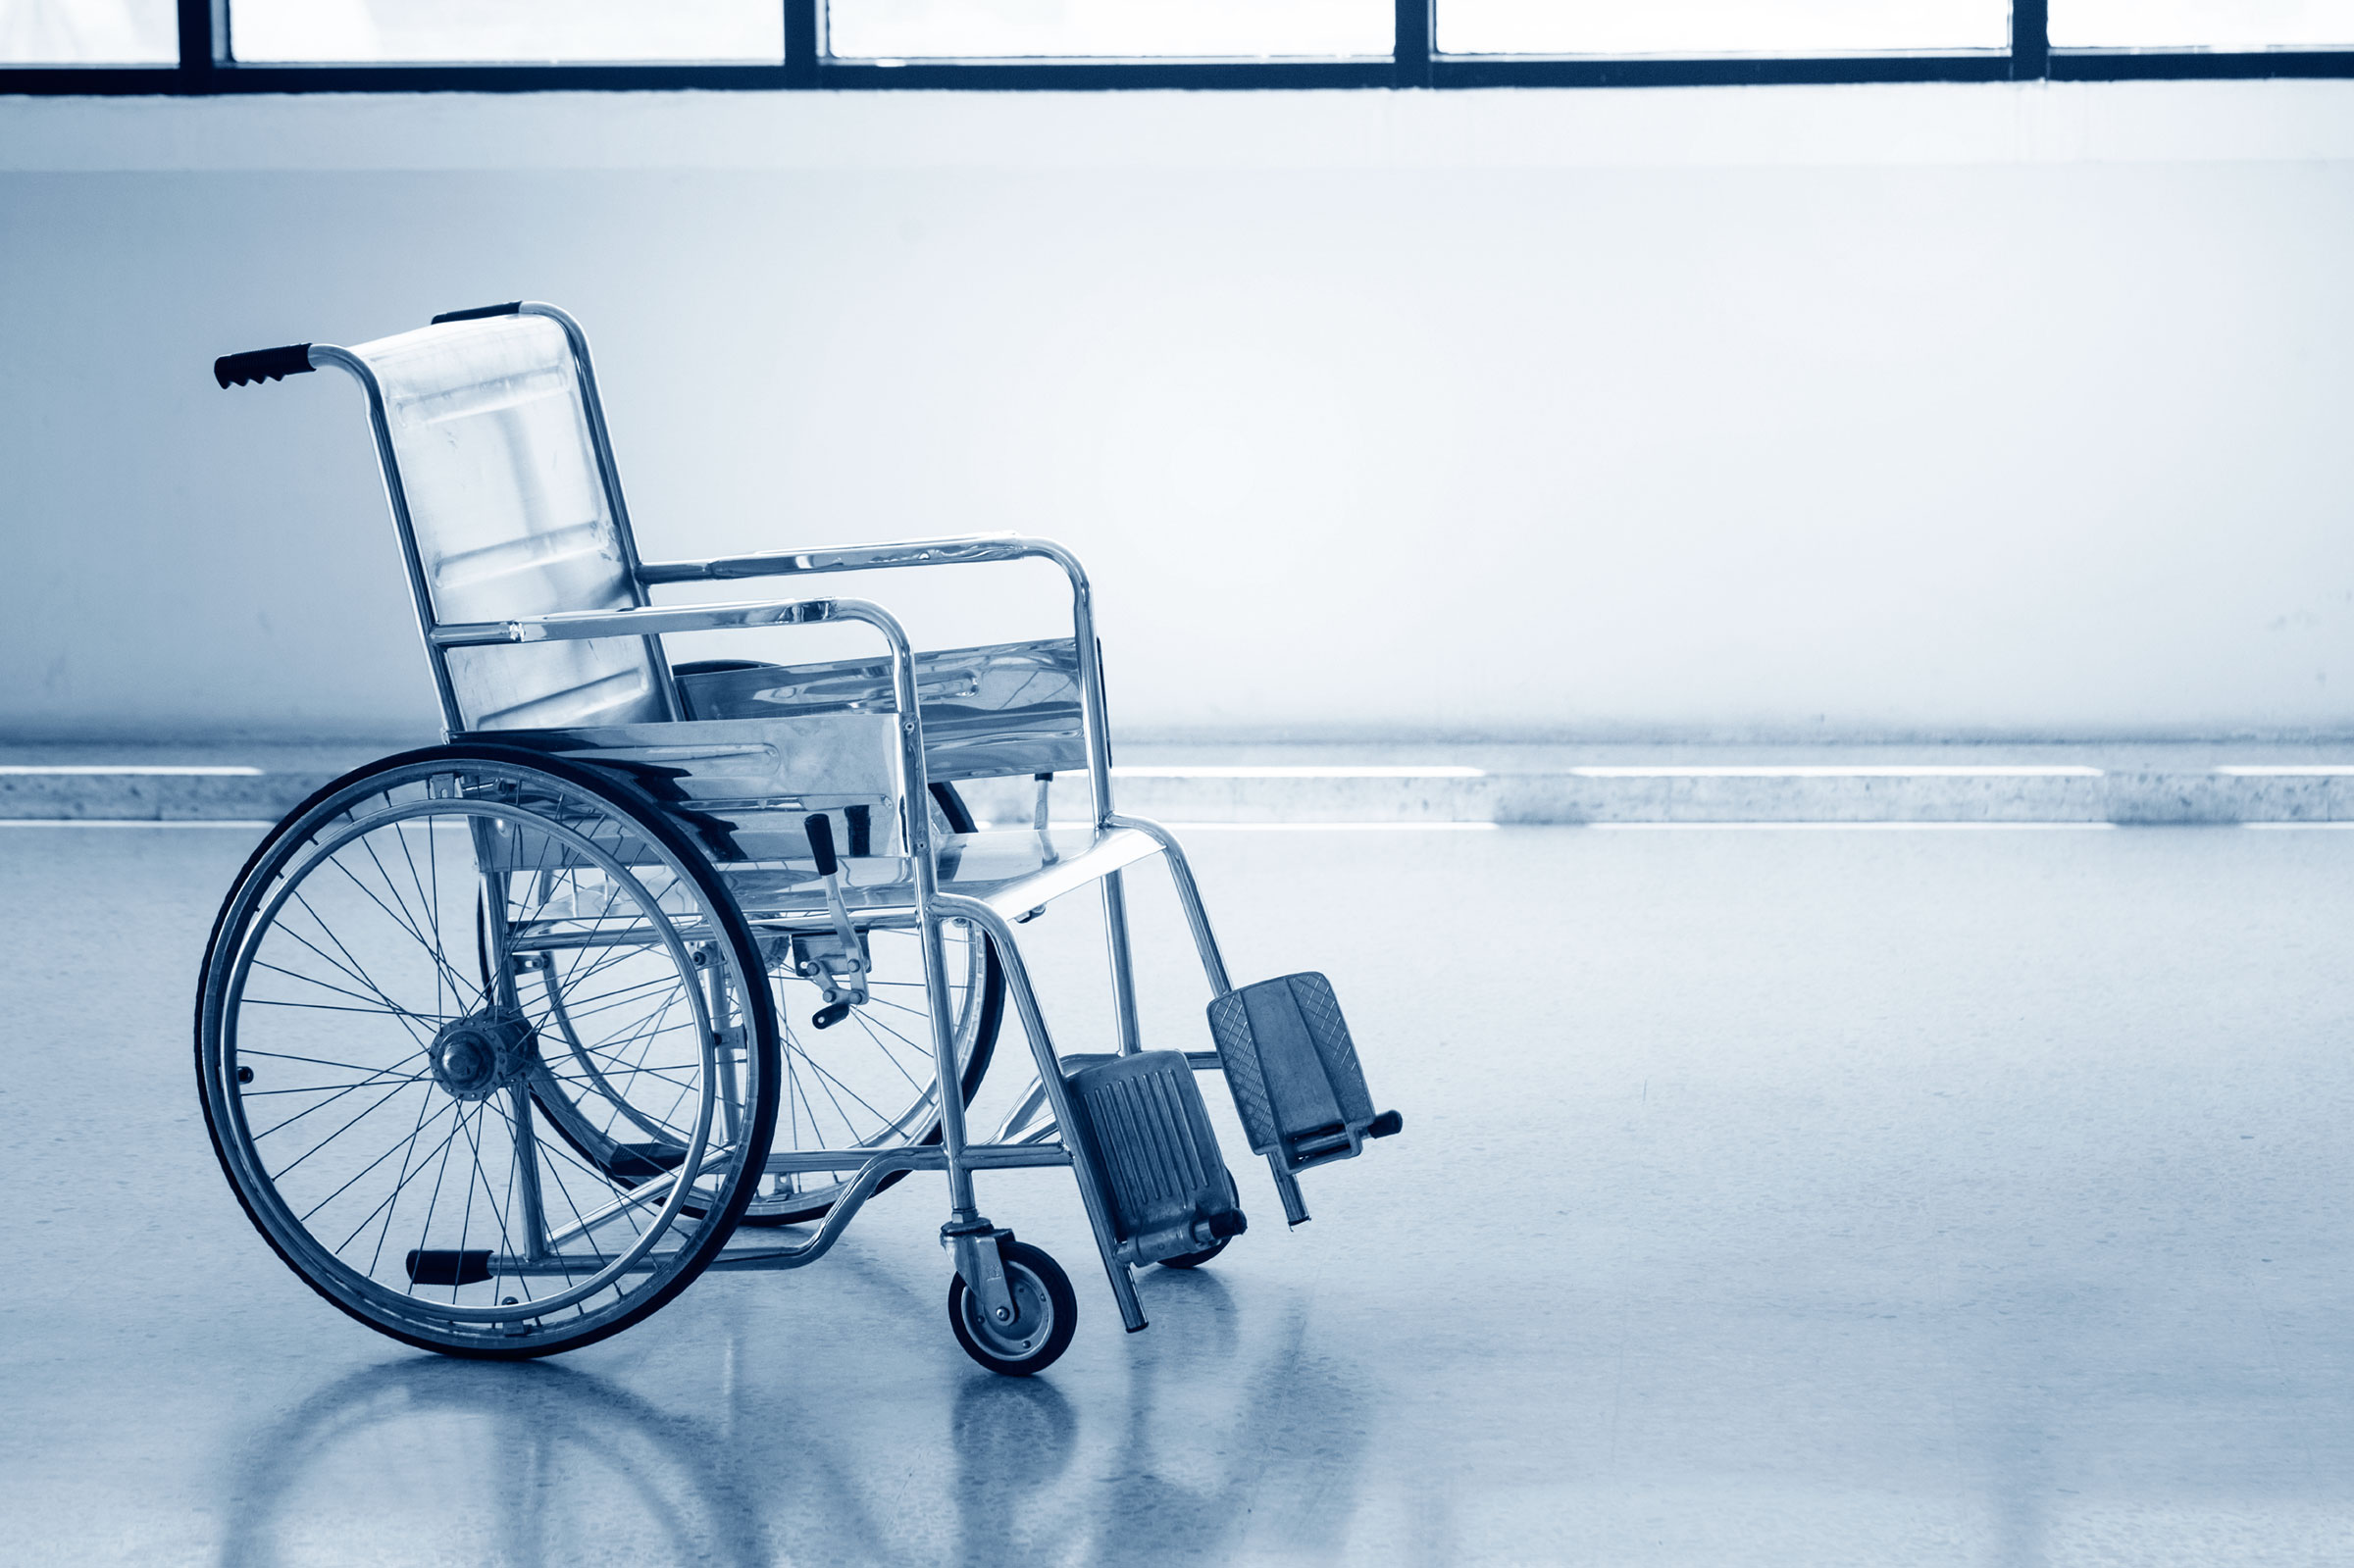 22-13-things-your-flight-attendant-wont-tell-you-wheelchair